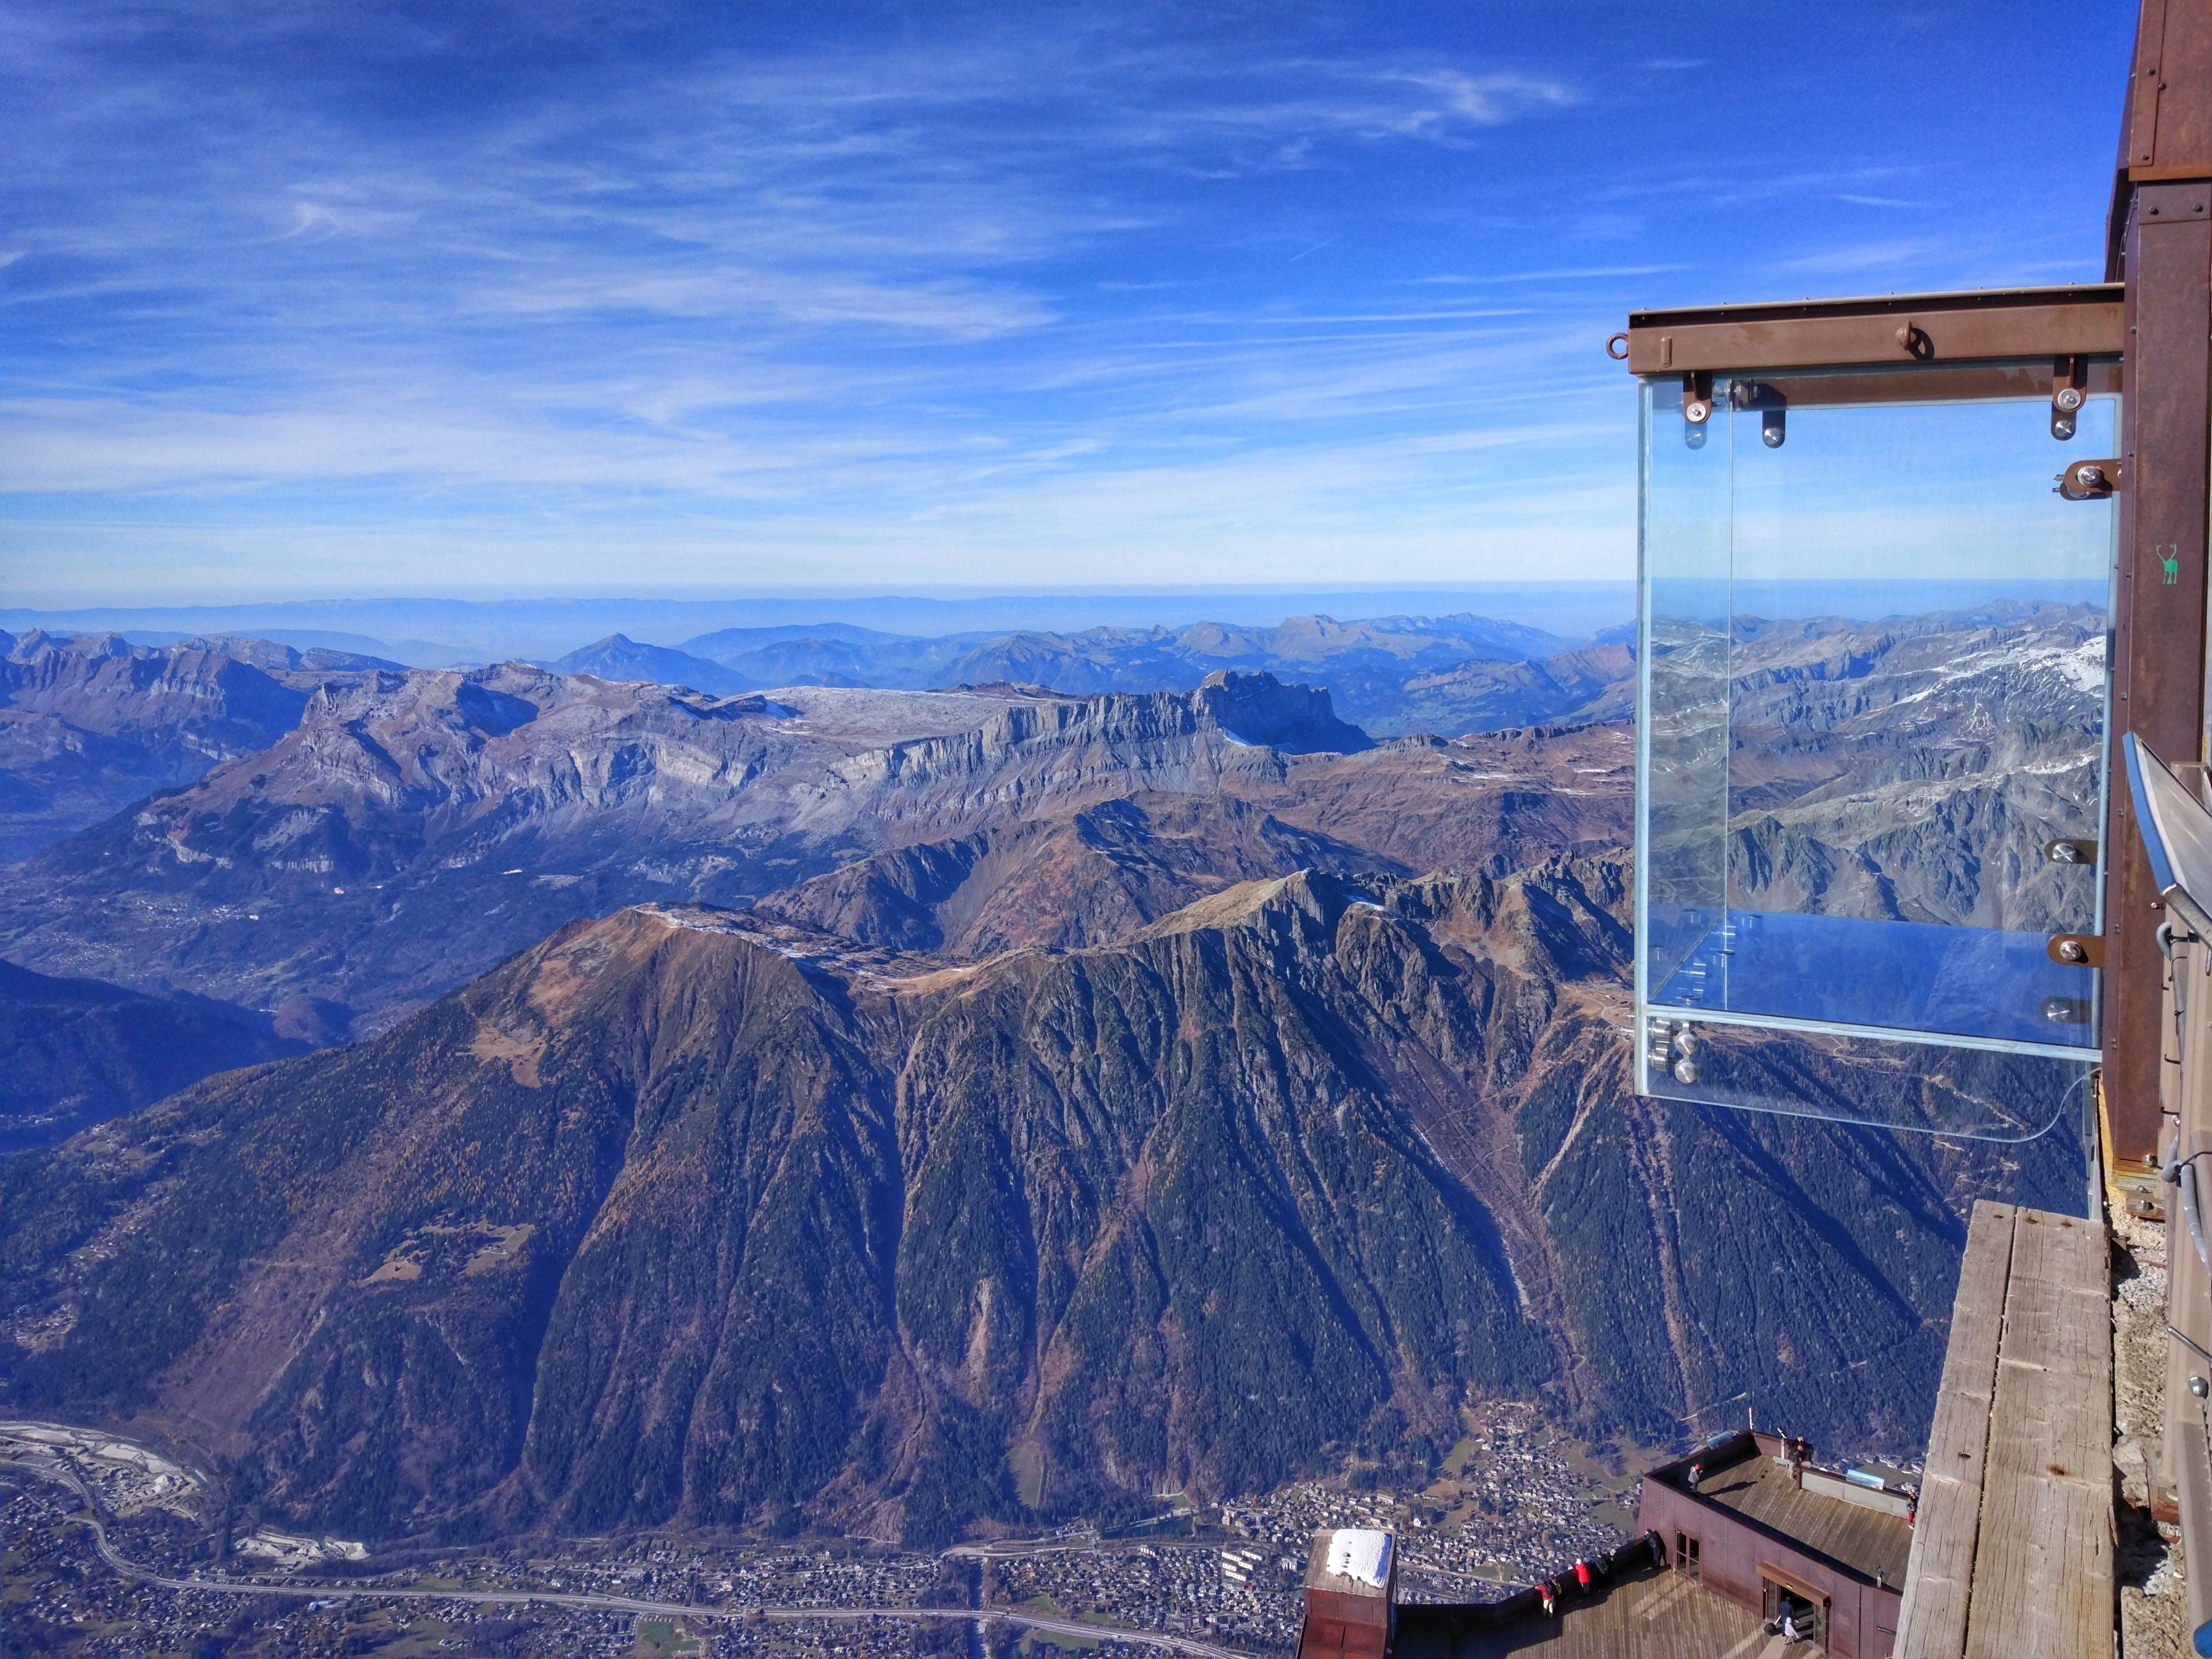 glass-bottomed observation decks